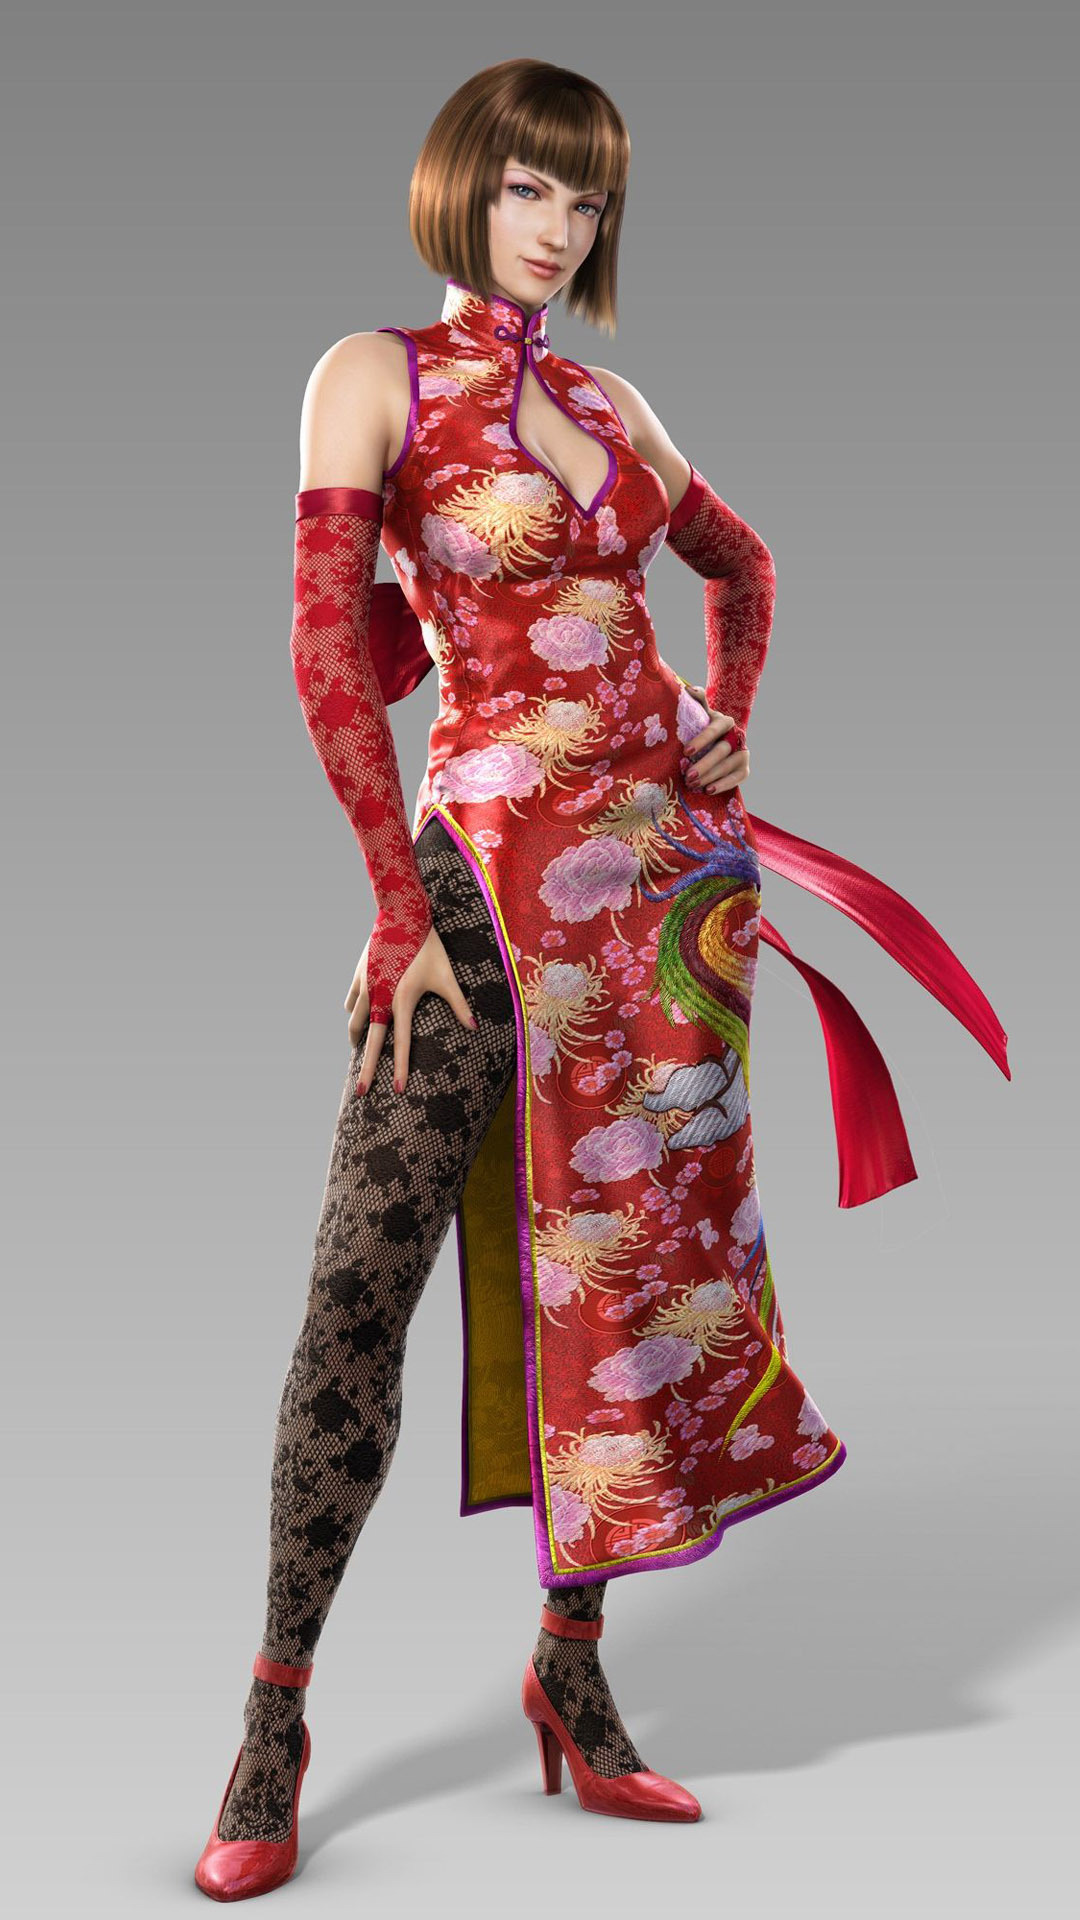 Free Download Anna Williams Tekken Blood Vengeance Mobile